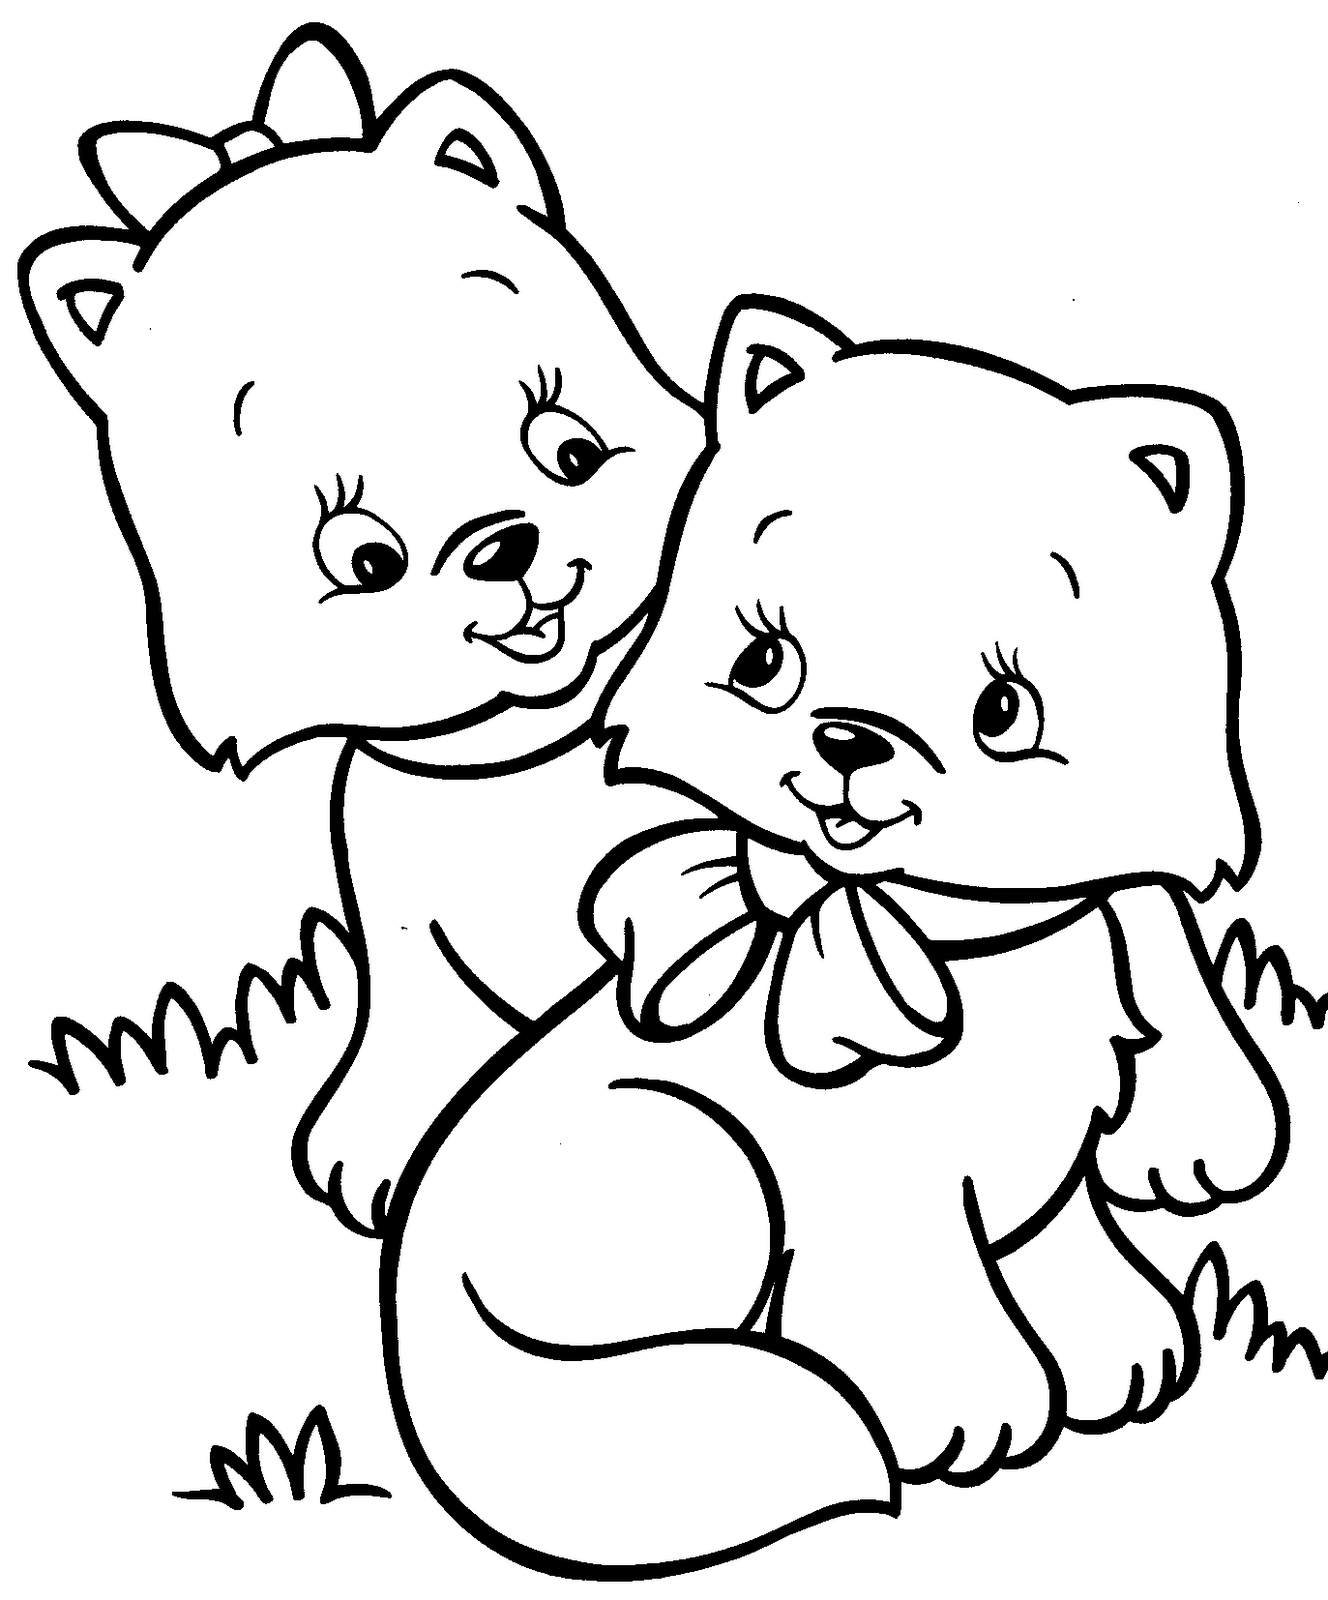 photograph regarding Printable Kitten Coloring Pages titled Kitten Coloring Webpages - Great Coloring Webpages For Small children